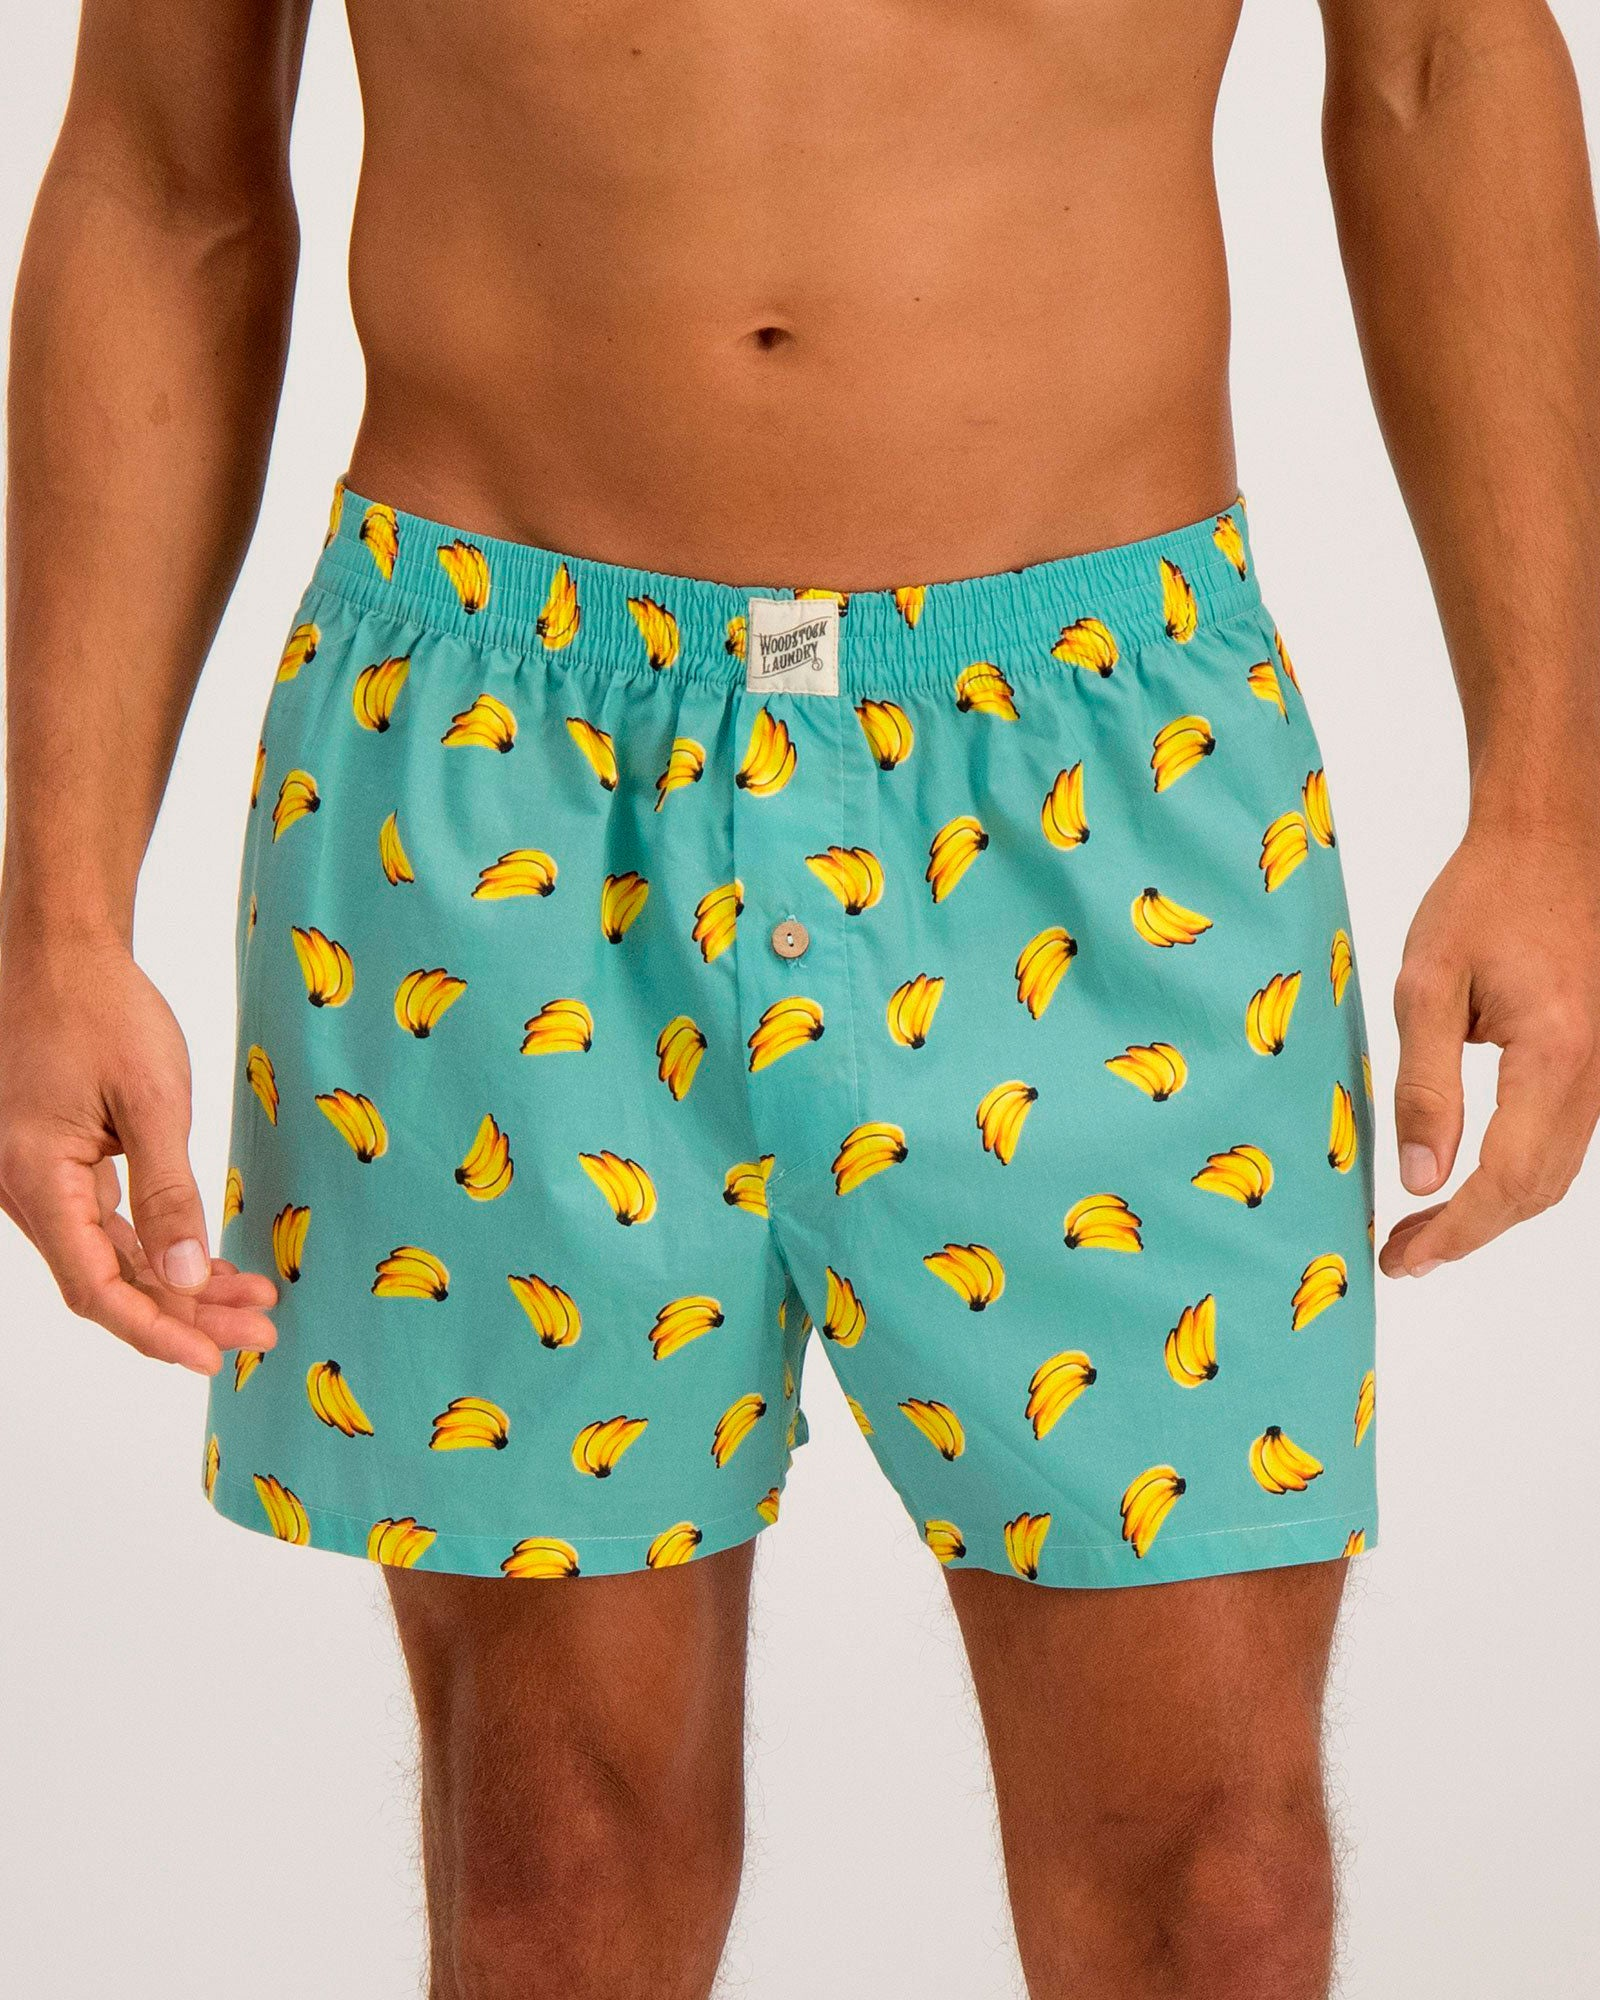 Mens Boxers Bananas - Woodstock Laundry